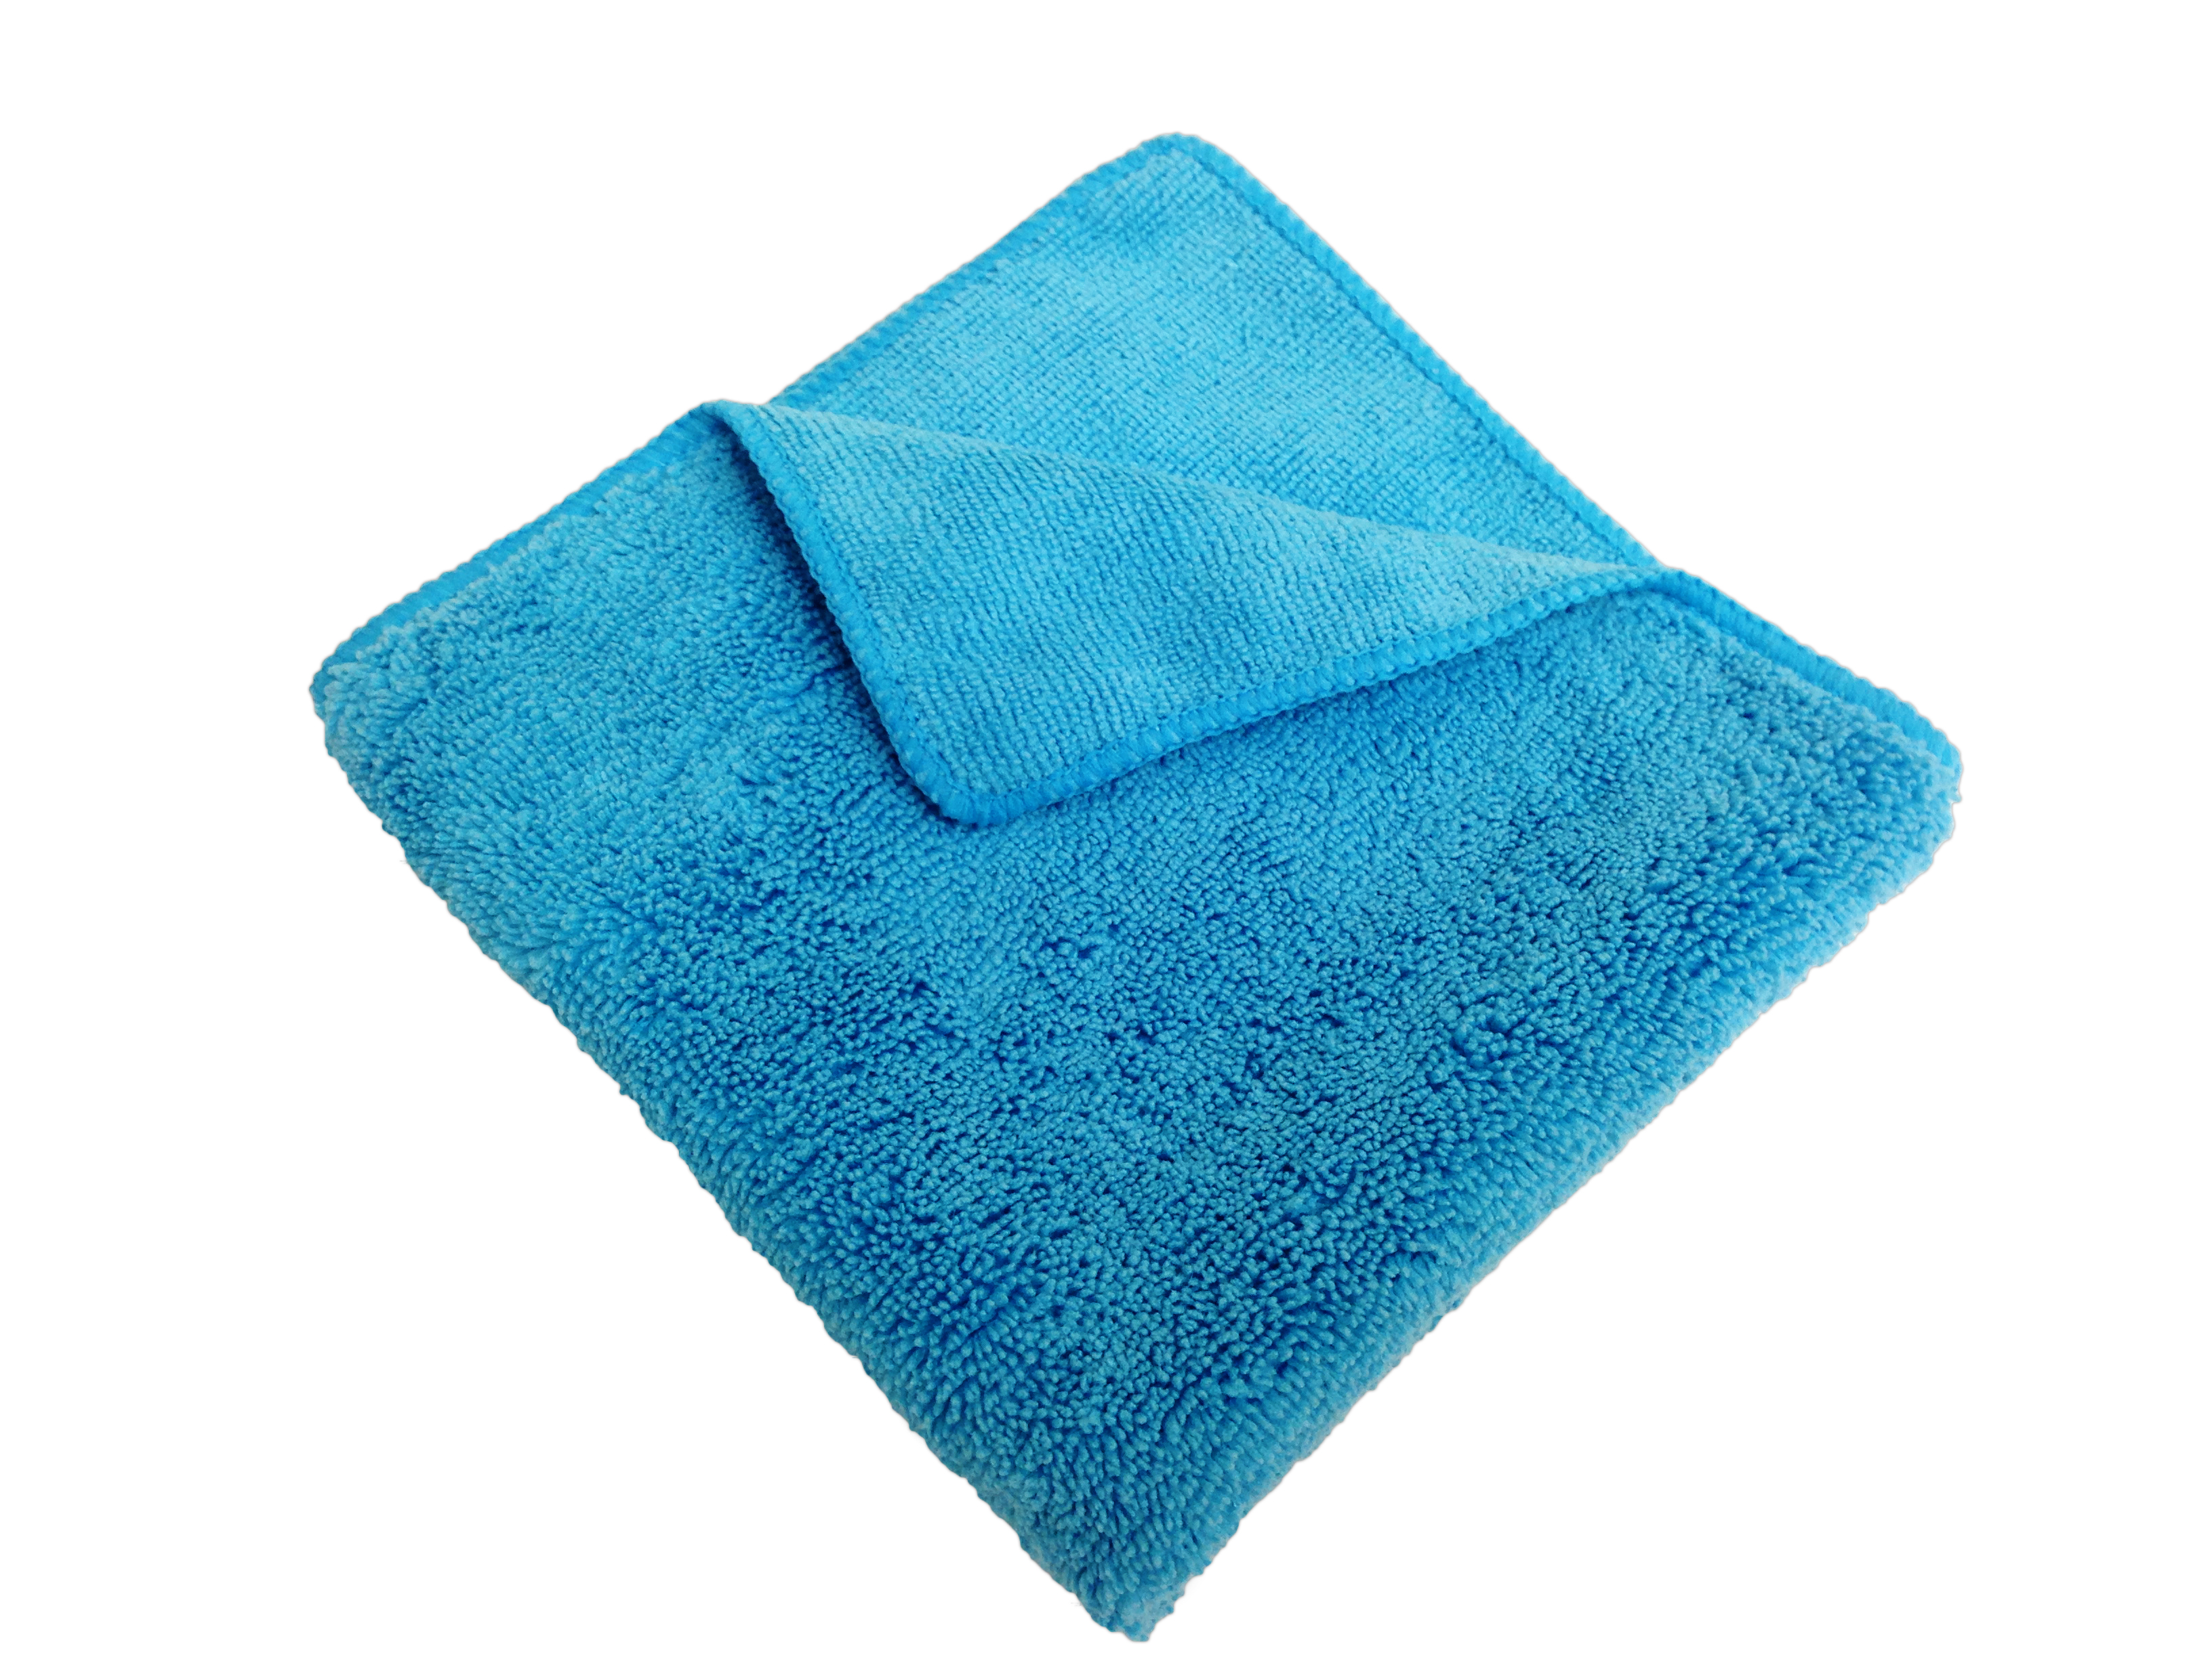 14 X14 Fluffy Cloth Microfiber 350gsm